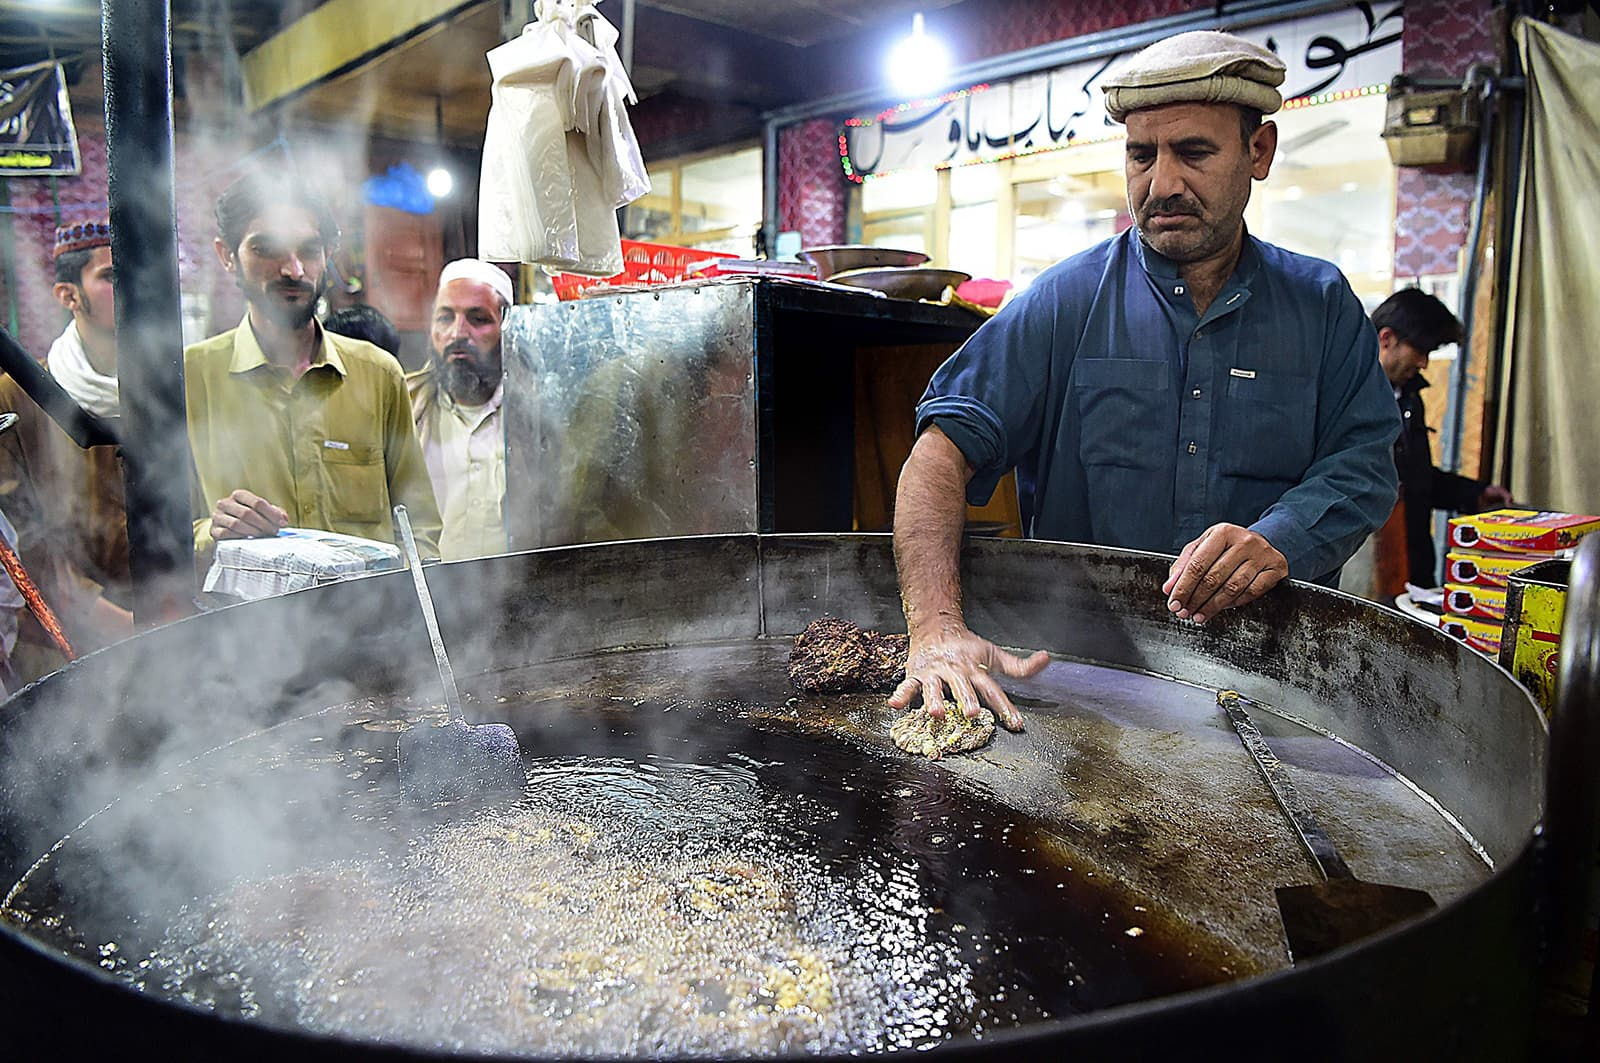 A cook fries kebabs as customers gather around at the Tory Kebab House in Namak Mandi in Peshawar. — AFP